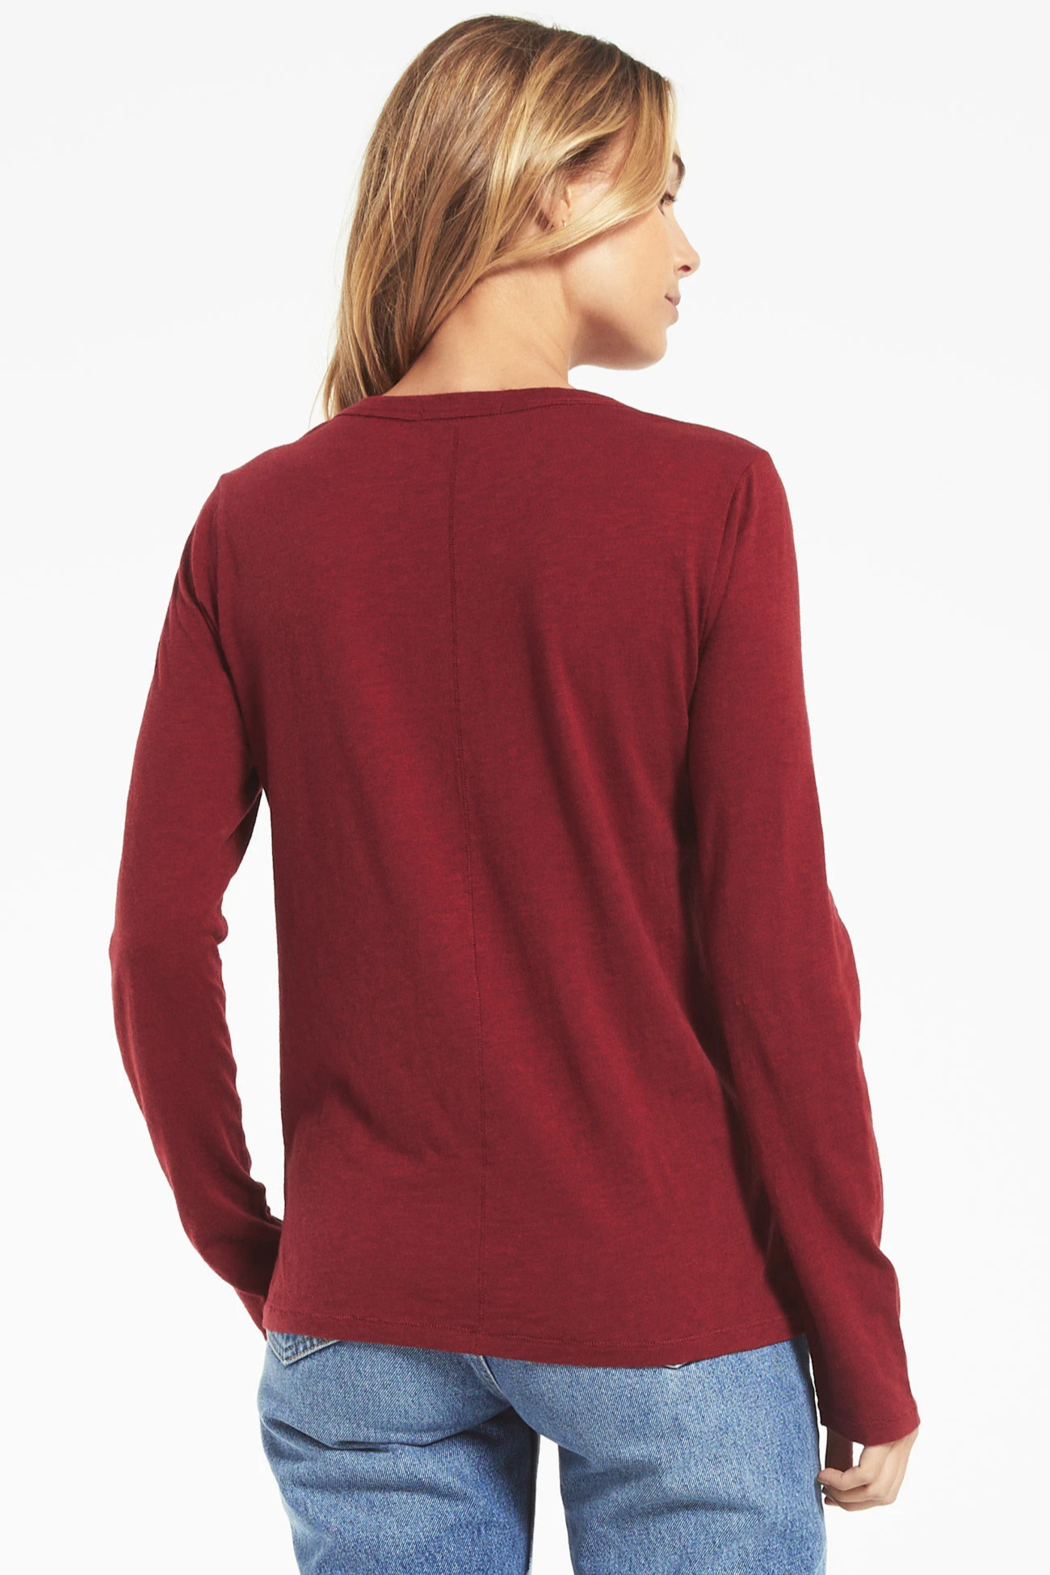 z supply Everyday Brushed Top - Front Full Image